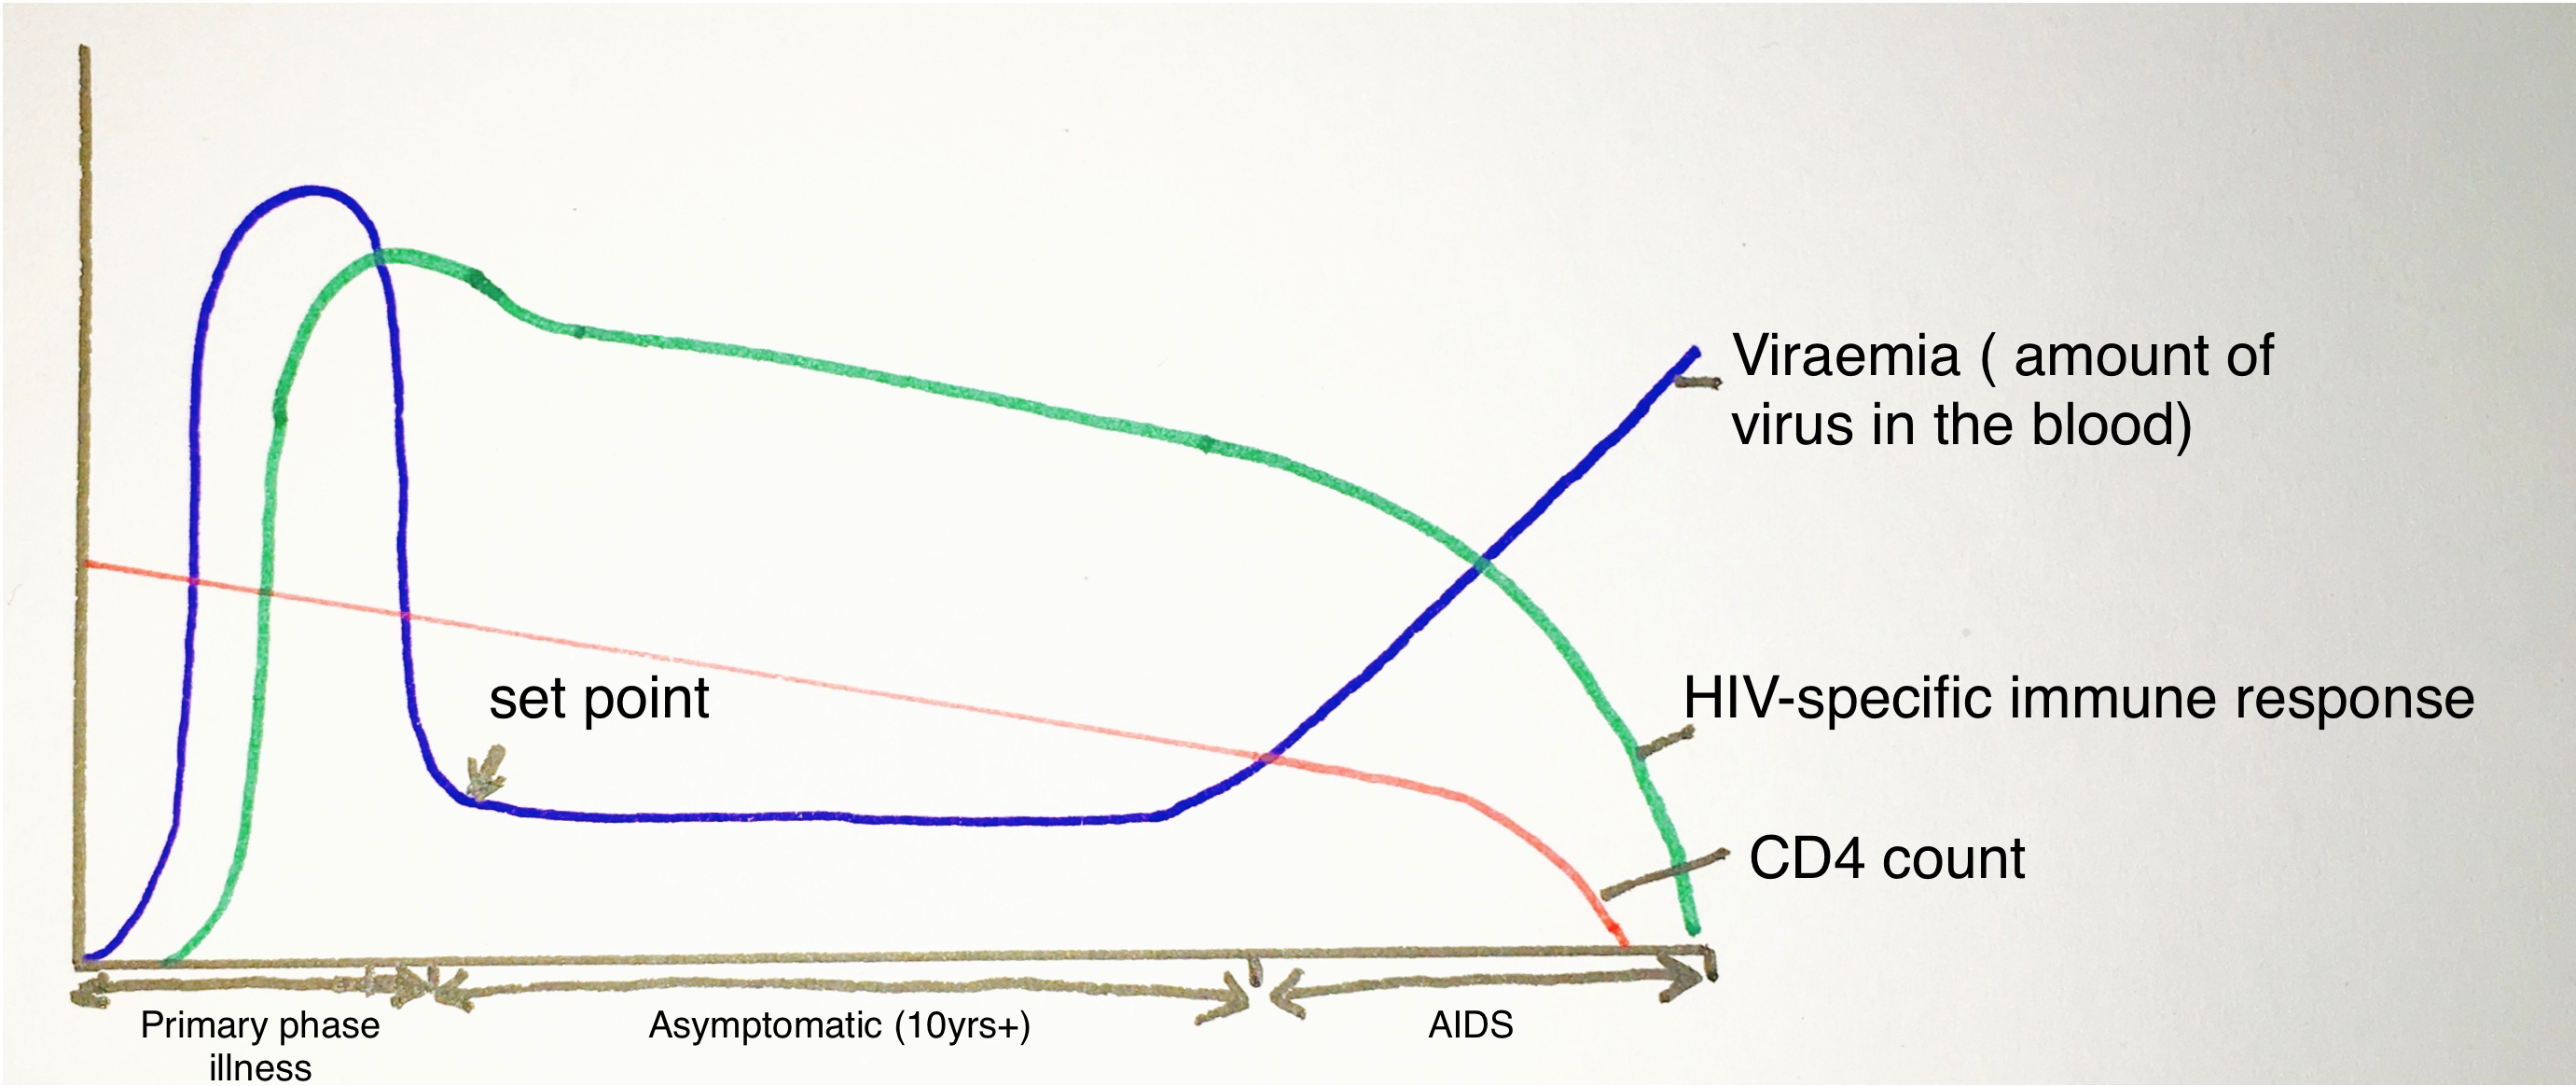 Course of HIV infection